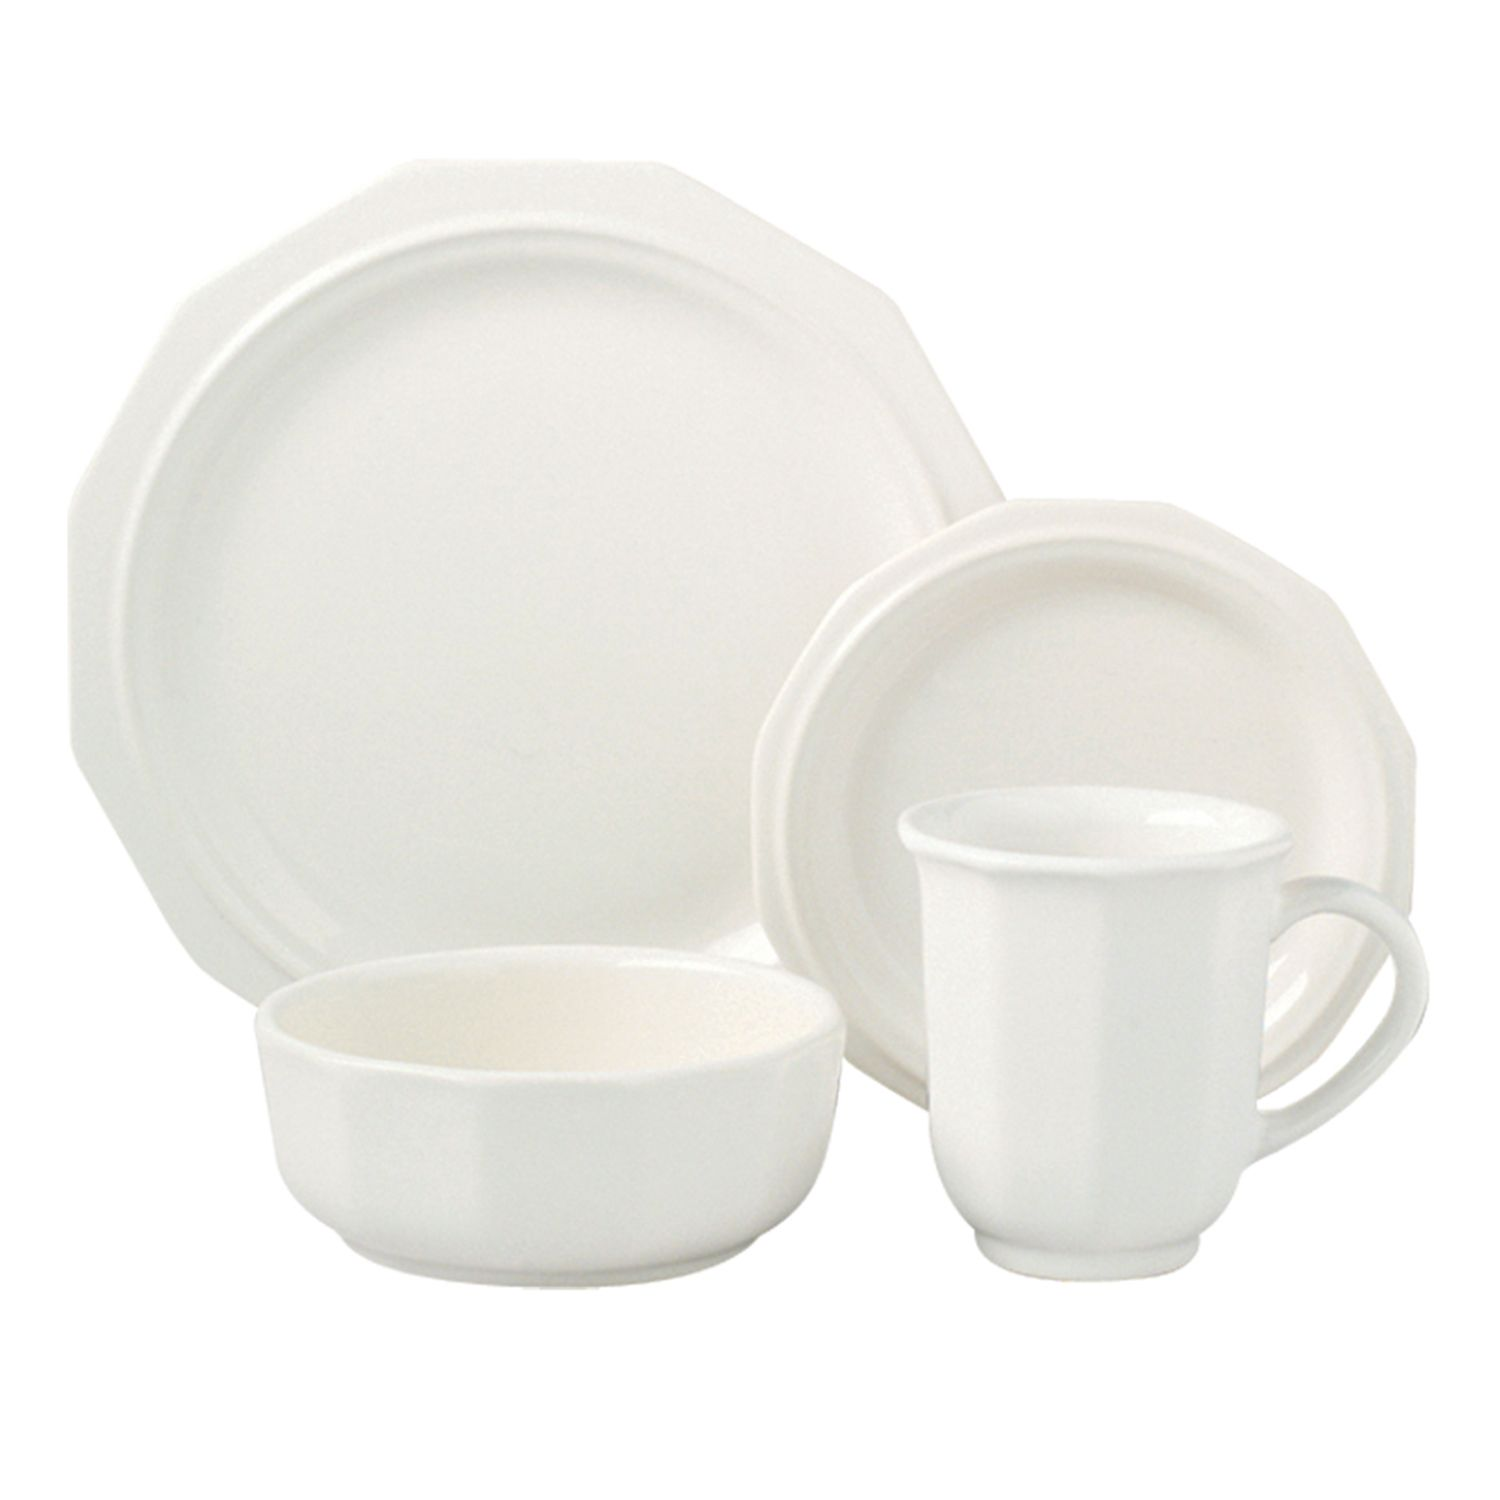 Pfaltzgraff Heritage 16-pc. Dinnerware Set  sc 1 st  Kohl\u0027s & Heritage 16-pc. Dinnerware Set